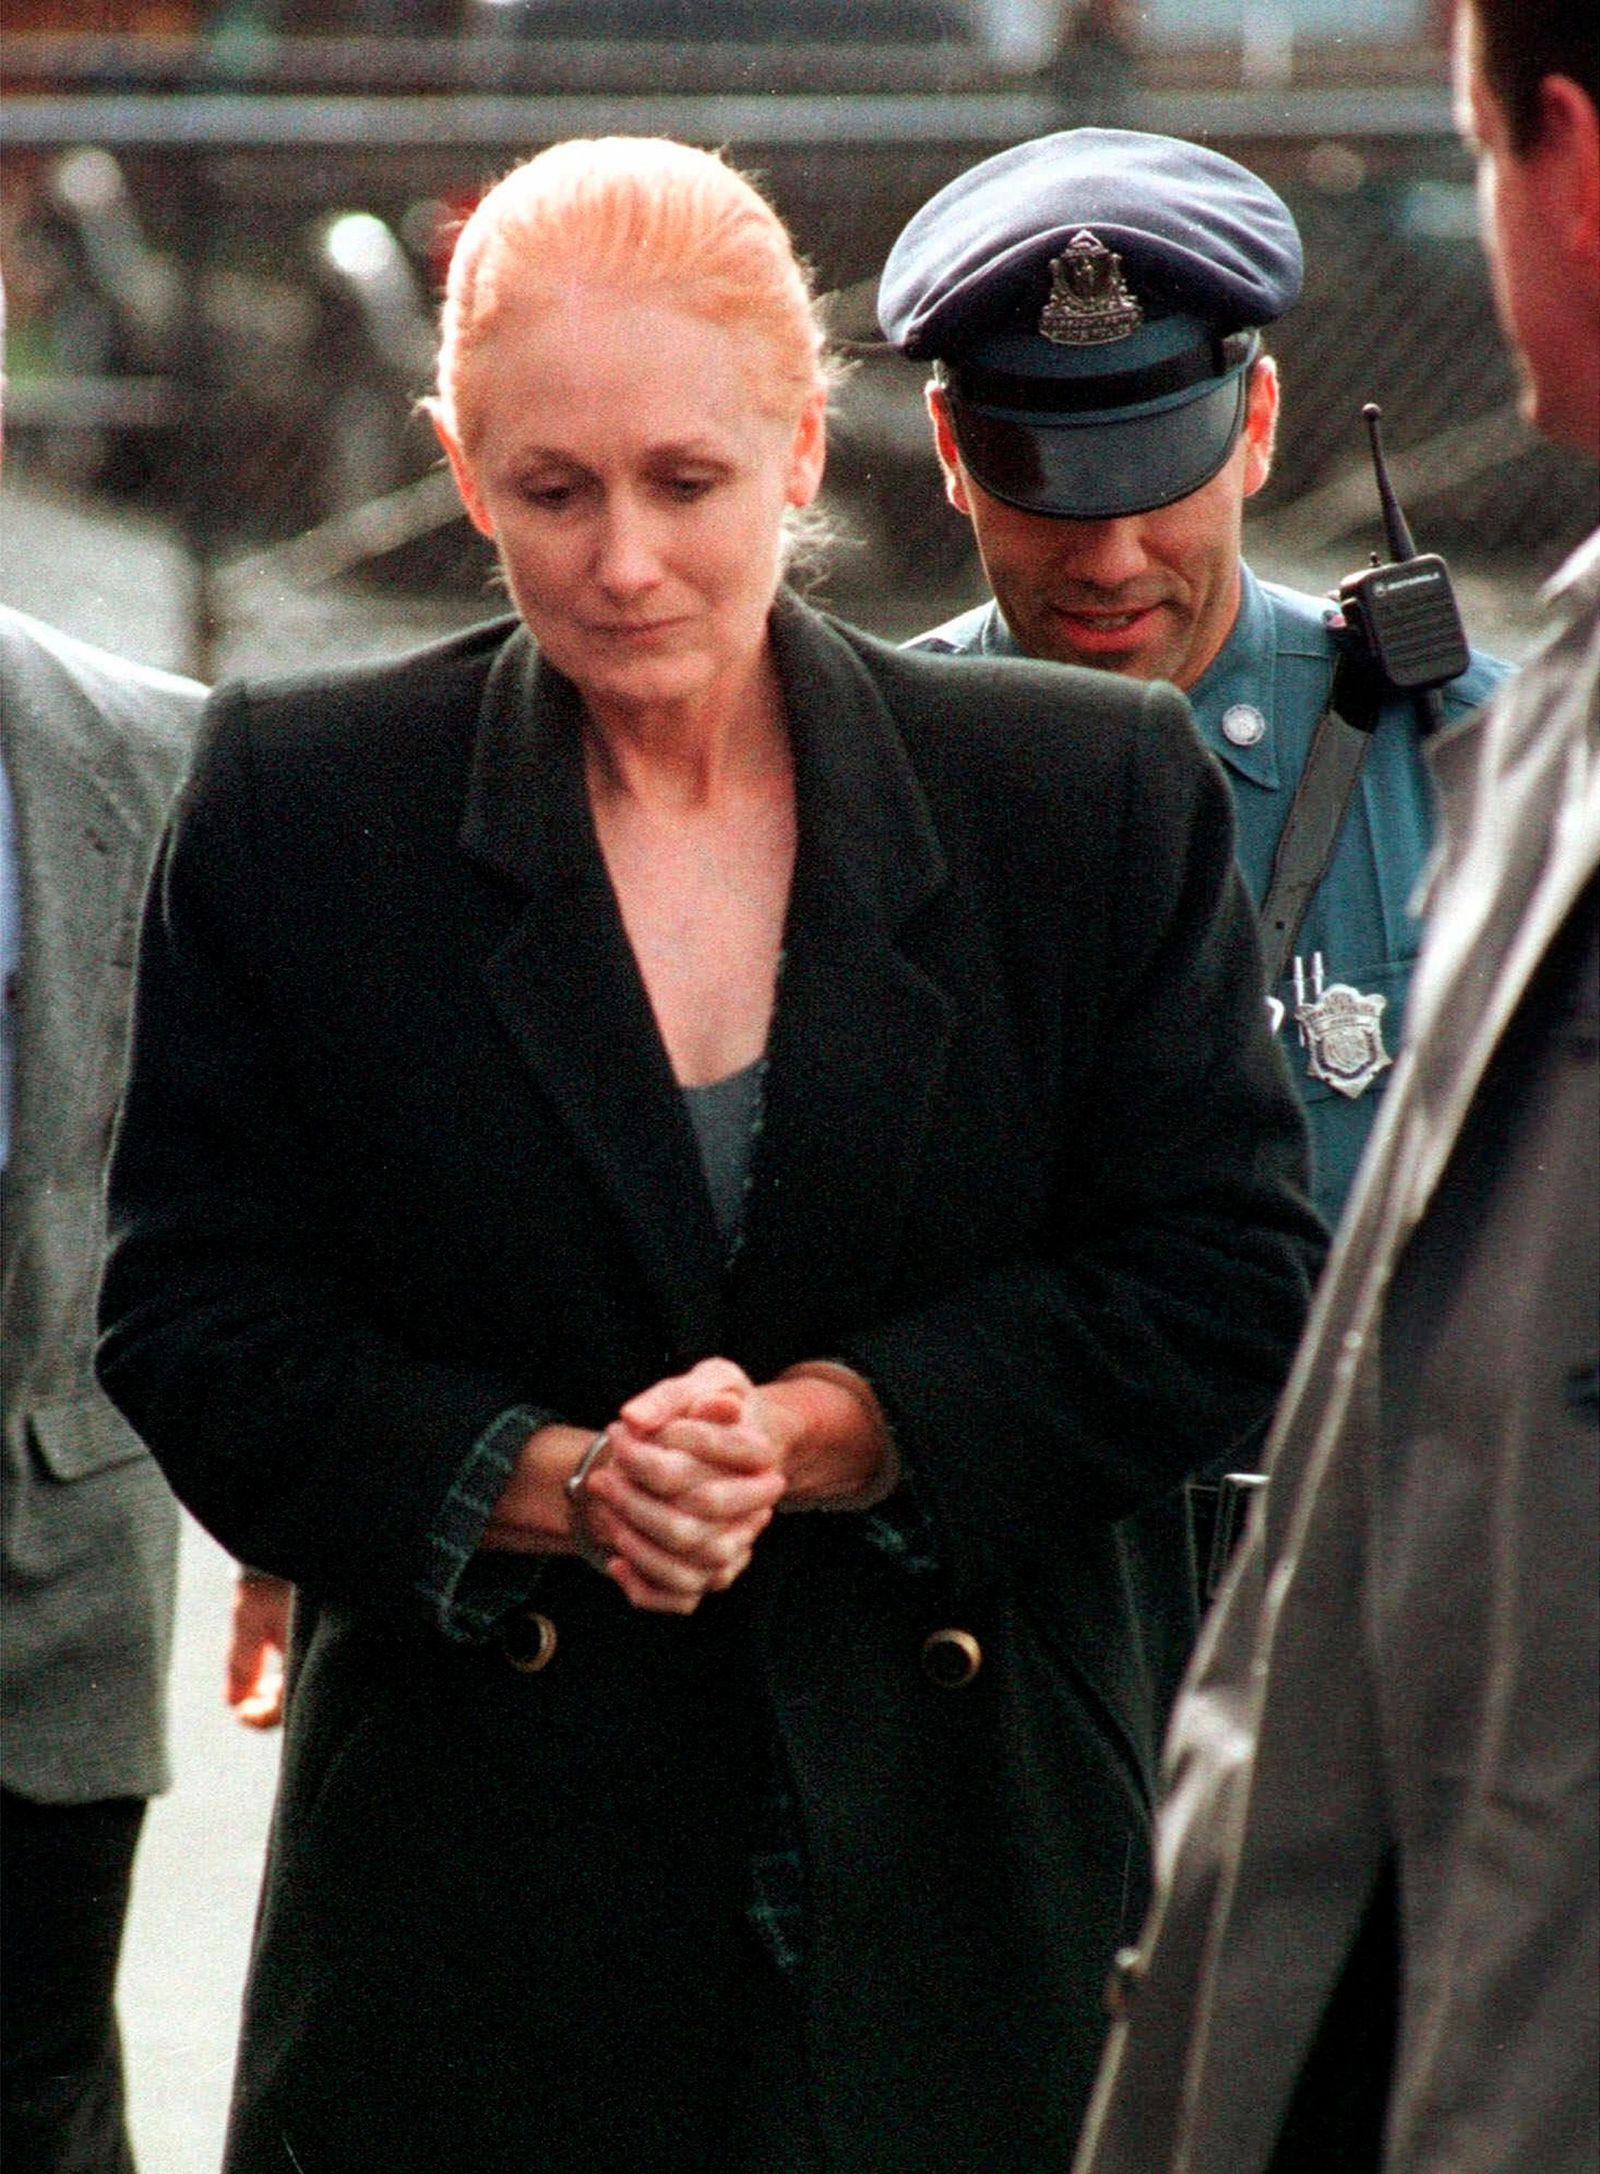 "FILE - In this Nov. 8, 1999 file photo, Margaret Rudin is escorted by police into Framingham District Court in Framingham, Mass., before her arraignment on charges in connection with the shooting death of her husband. On Friday, Jan. 10, 2020, Rudin was released from prison, more than 25 years after her millionaire husband's burned body was found outside Las Vegas and 20 years after a tip generated by a ""most wanted"" TV show led to her arrest while living in Massachusetts with a retired firefighter she met in Mexico. (AP Photo/Michael Dwyer, File)"